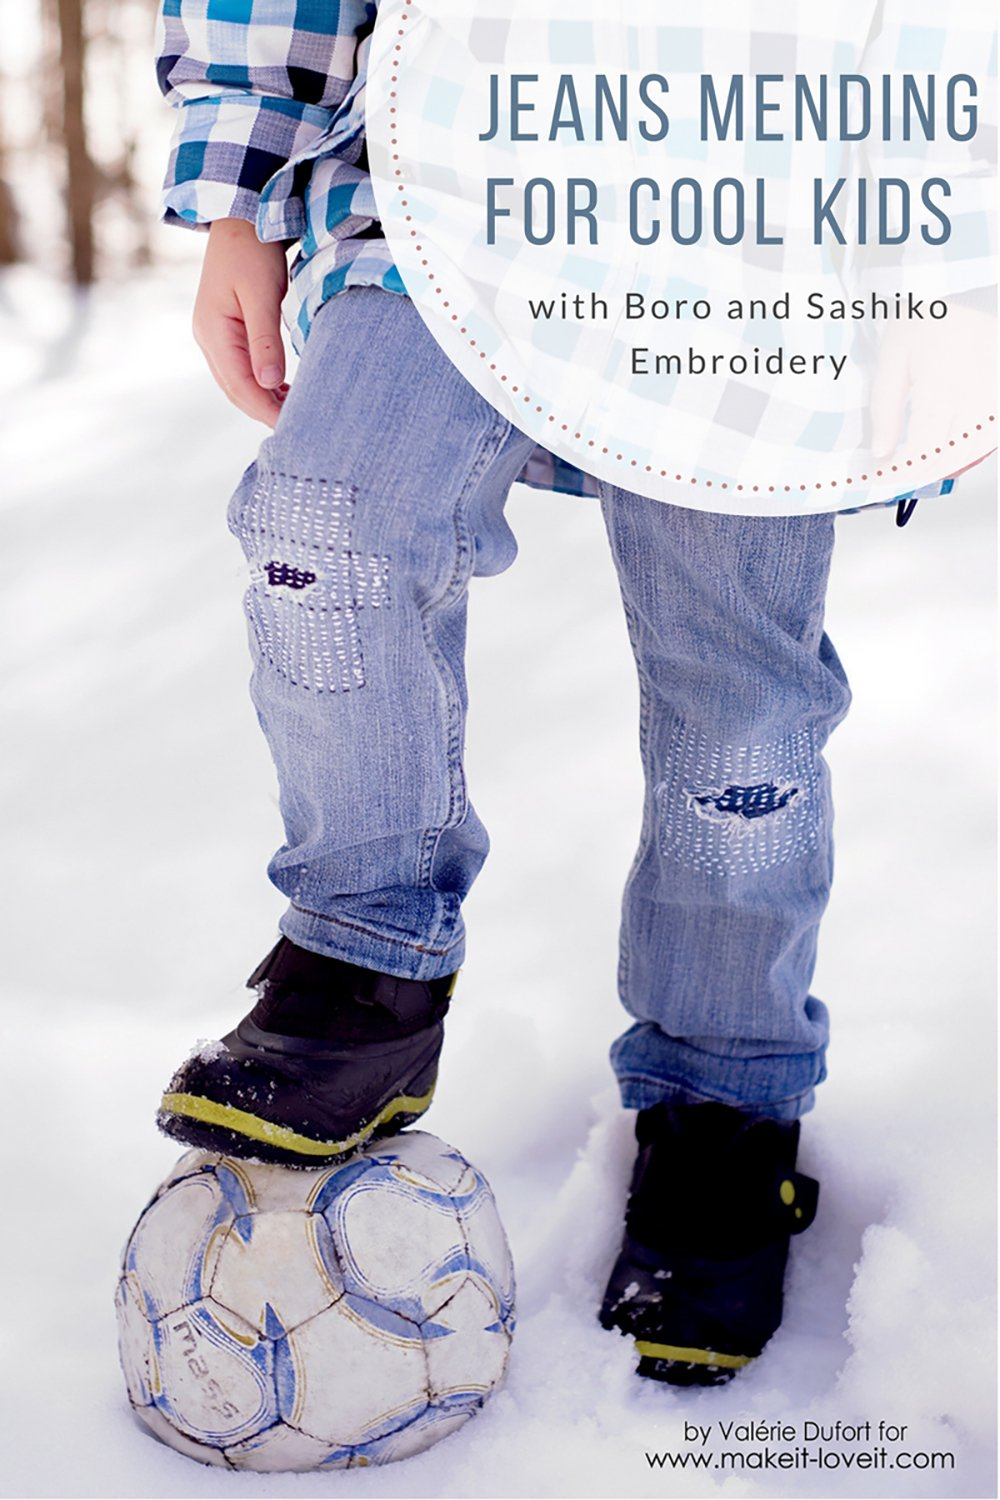 Mending Jeans For Cool Kids (…with Boro and Sashiko Embroidery)